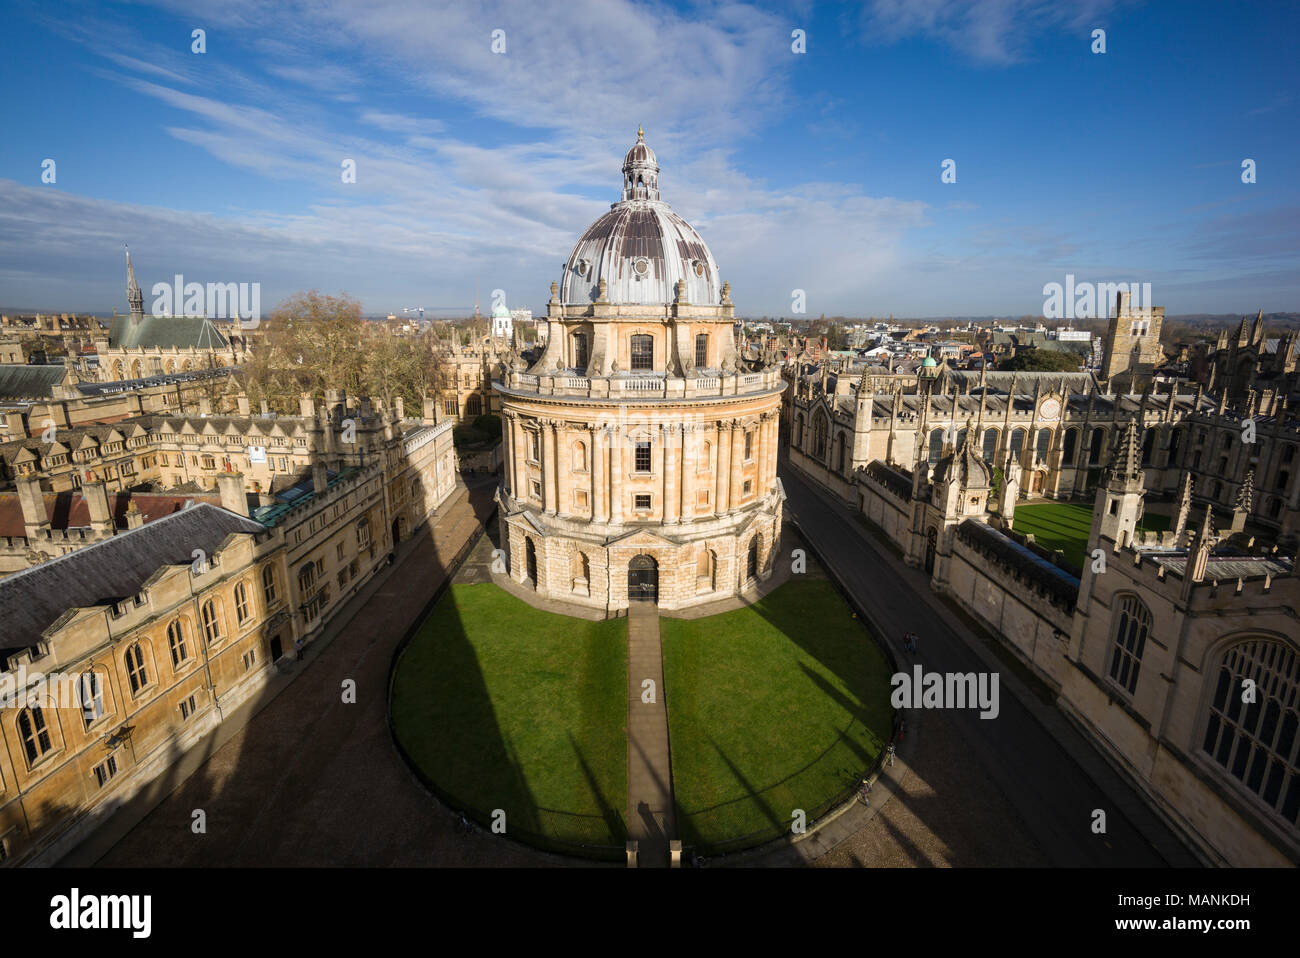 Oxford. England. View of Radcliffe Camera, Radcliffe Square with Brasenose College on the left, and All Souls College, right.   Designed by James Gibb - Stock Image